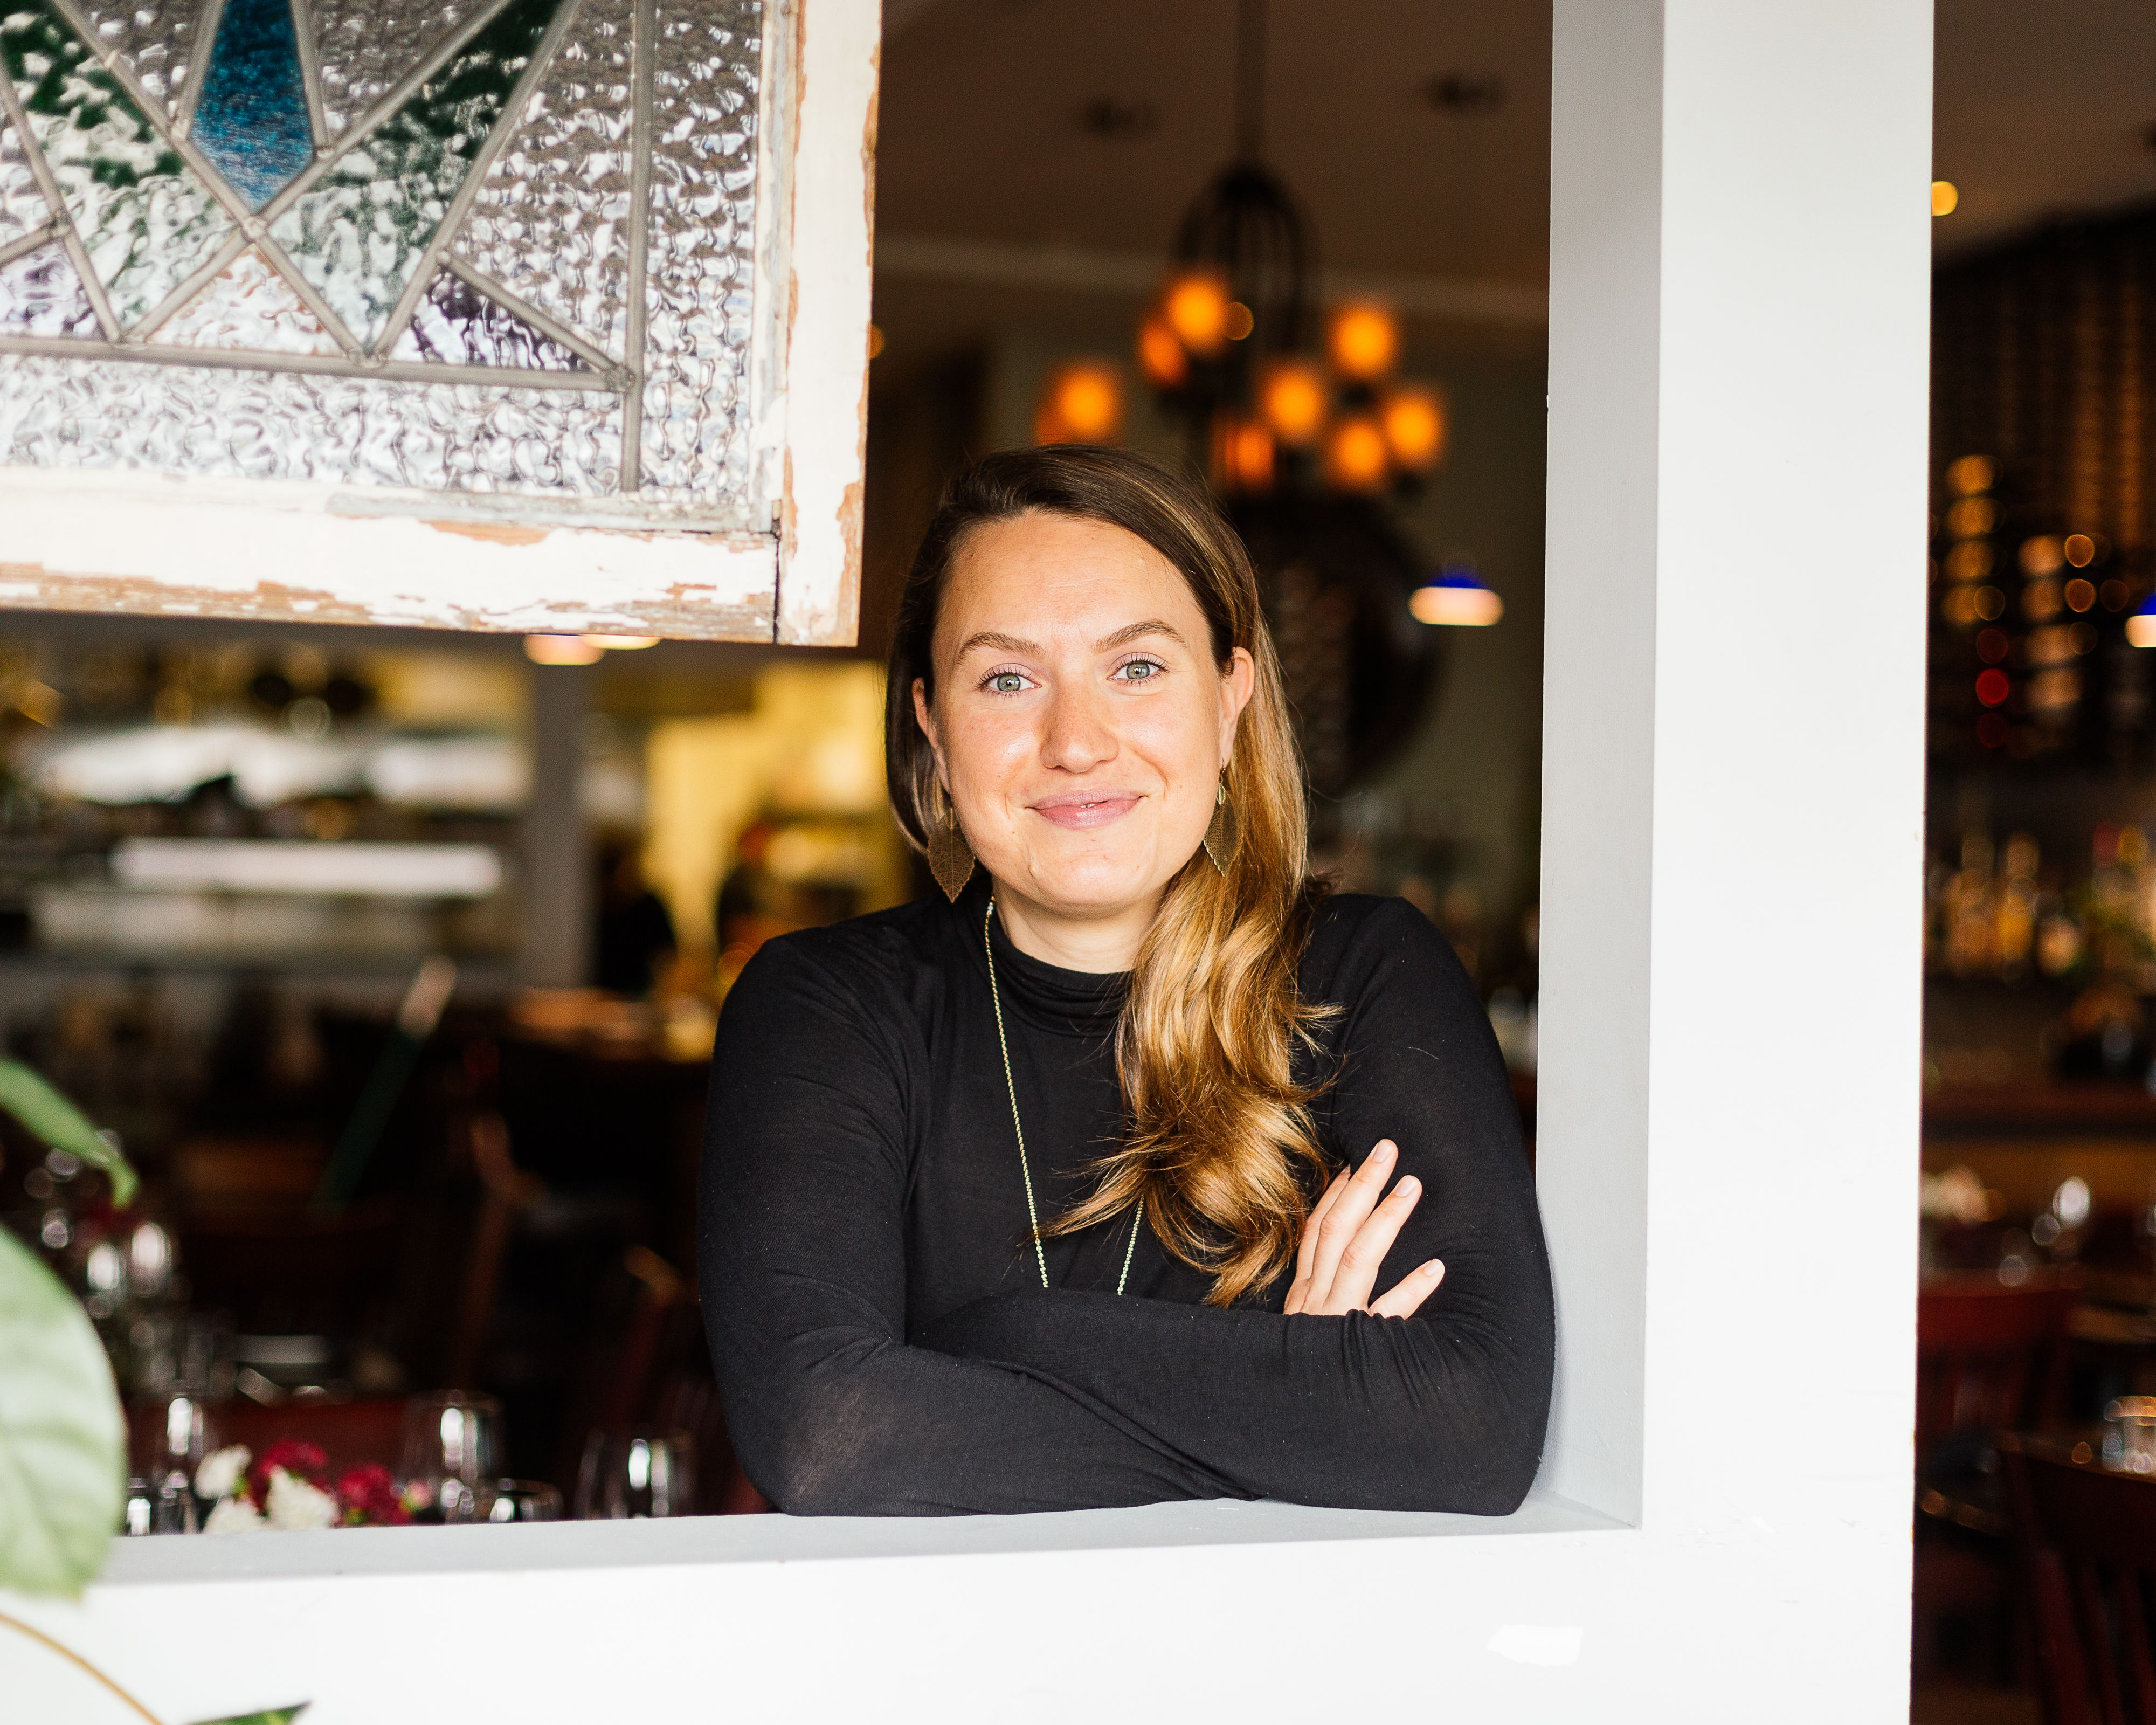 Food fight: Restaurant owners clash with DoorDash over